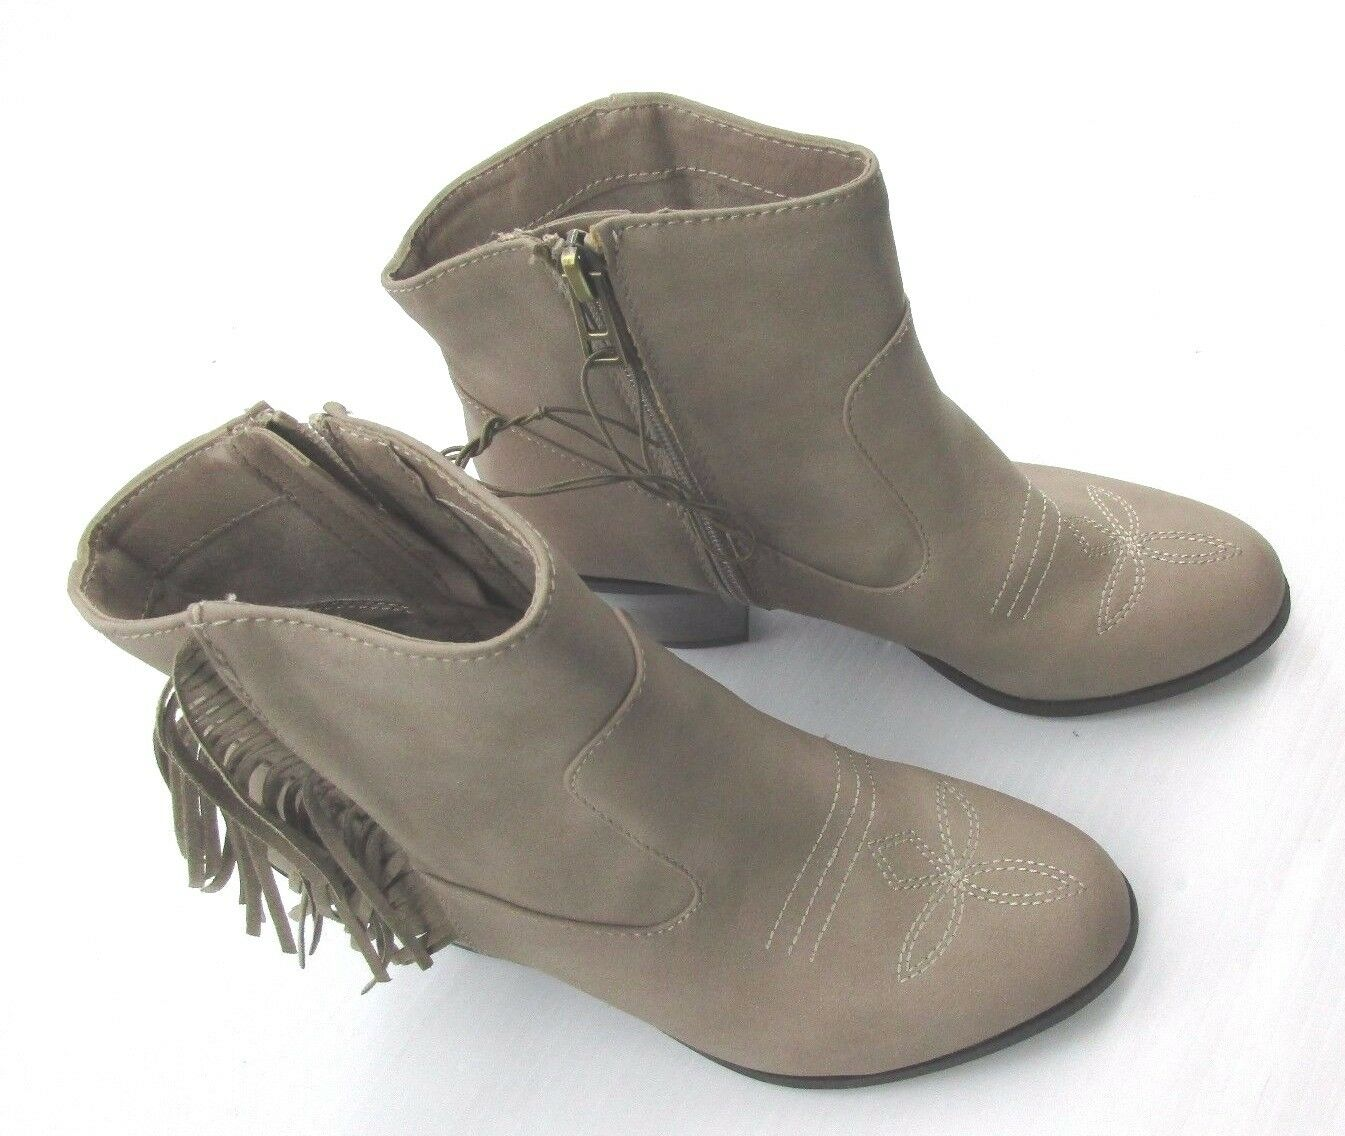 NWT *SAM & LIBBY* SIZE 6 TAN FAUX LEATHER SIDE ZIP ANKLE BOOTS